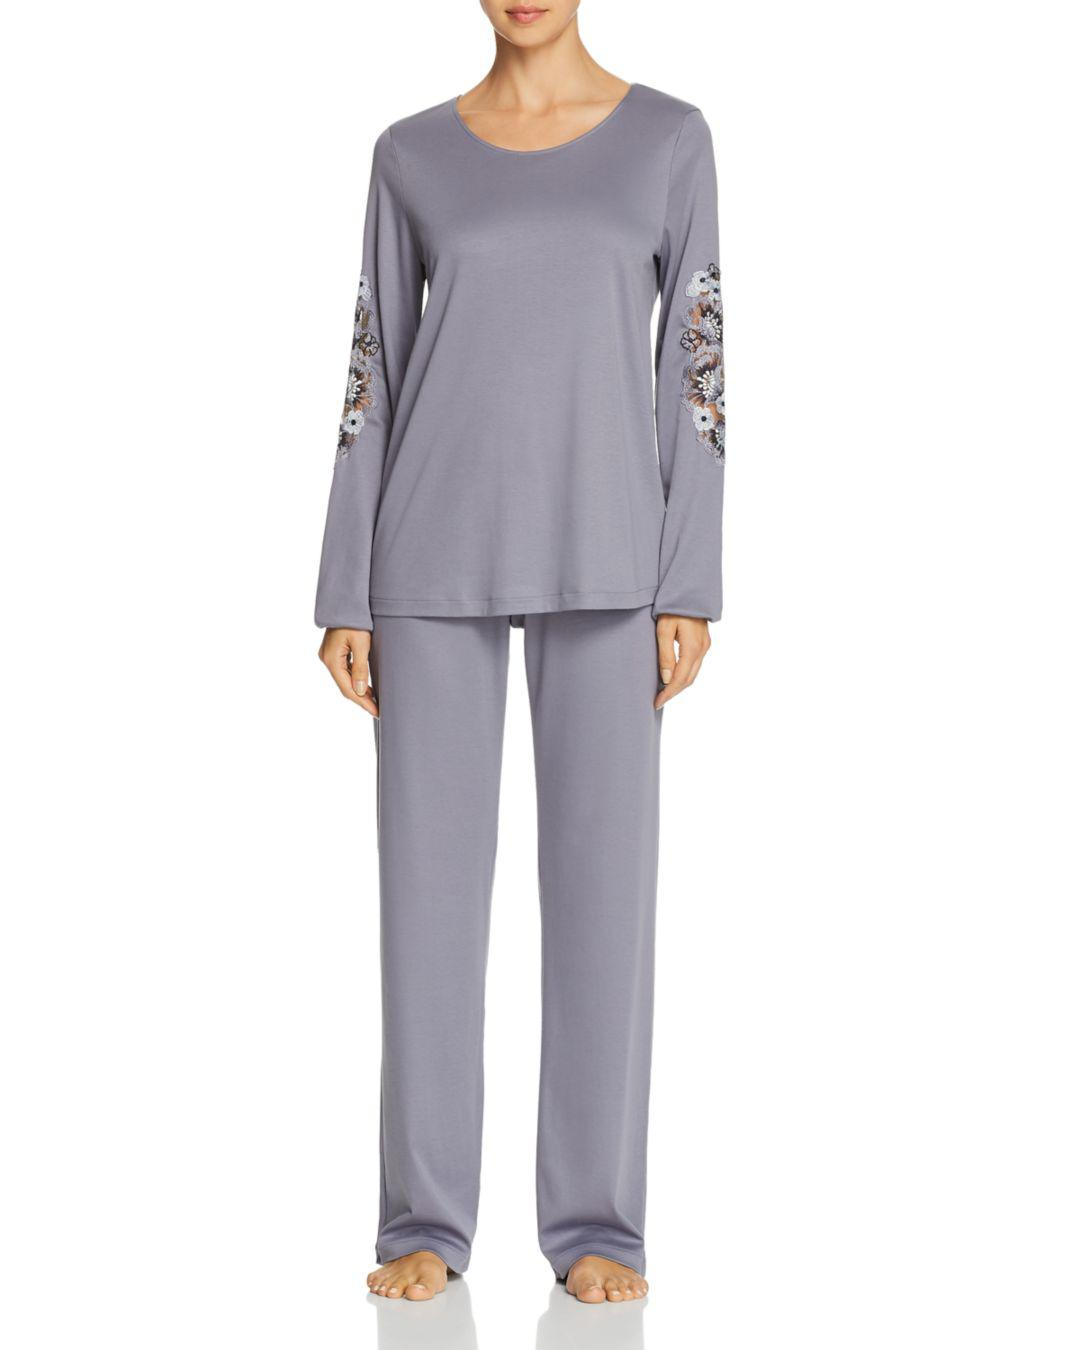 0661d113f6 Hanro Jana Embroidered Long Sleeve Cotton Pajama Set in Blue - Lyst